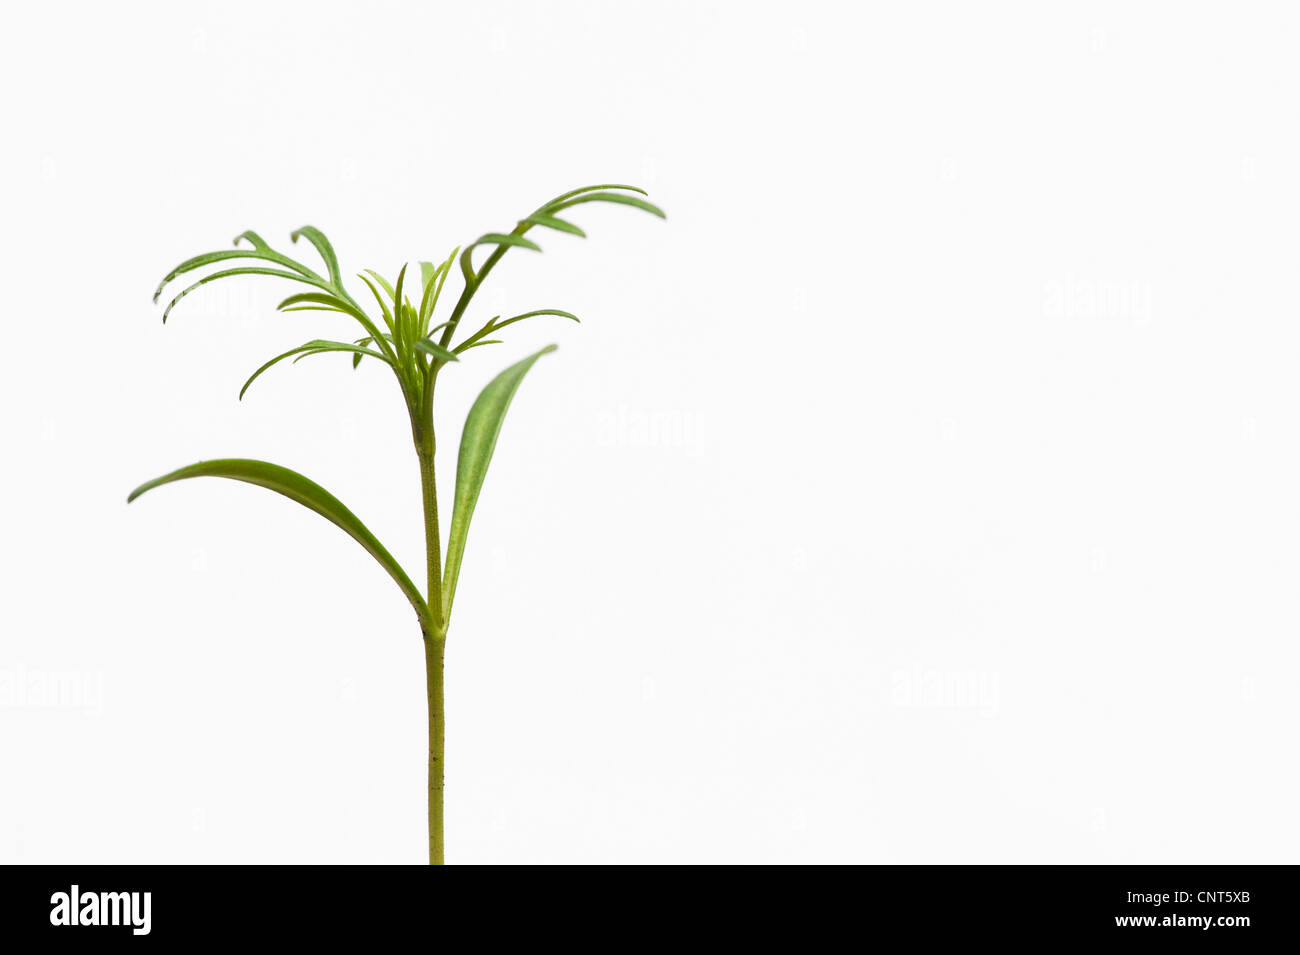 Cosmos flower seedling against a white background - Stock Image